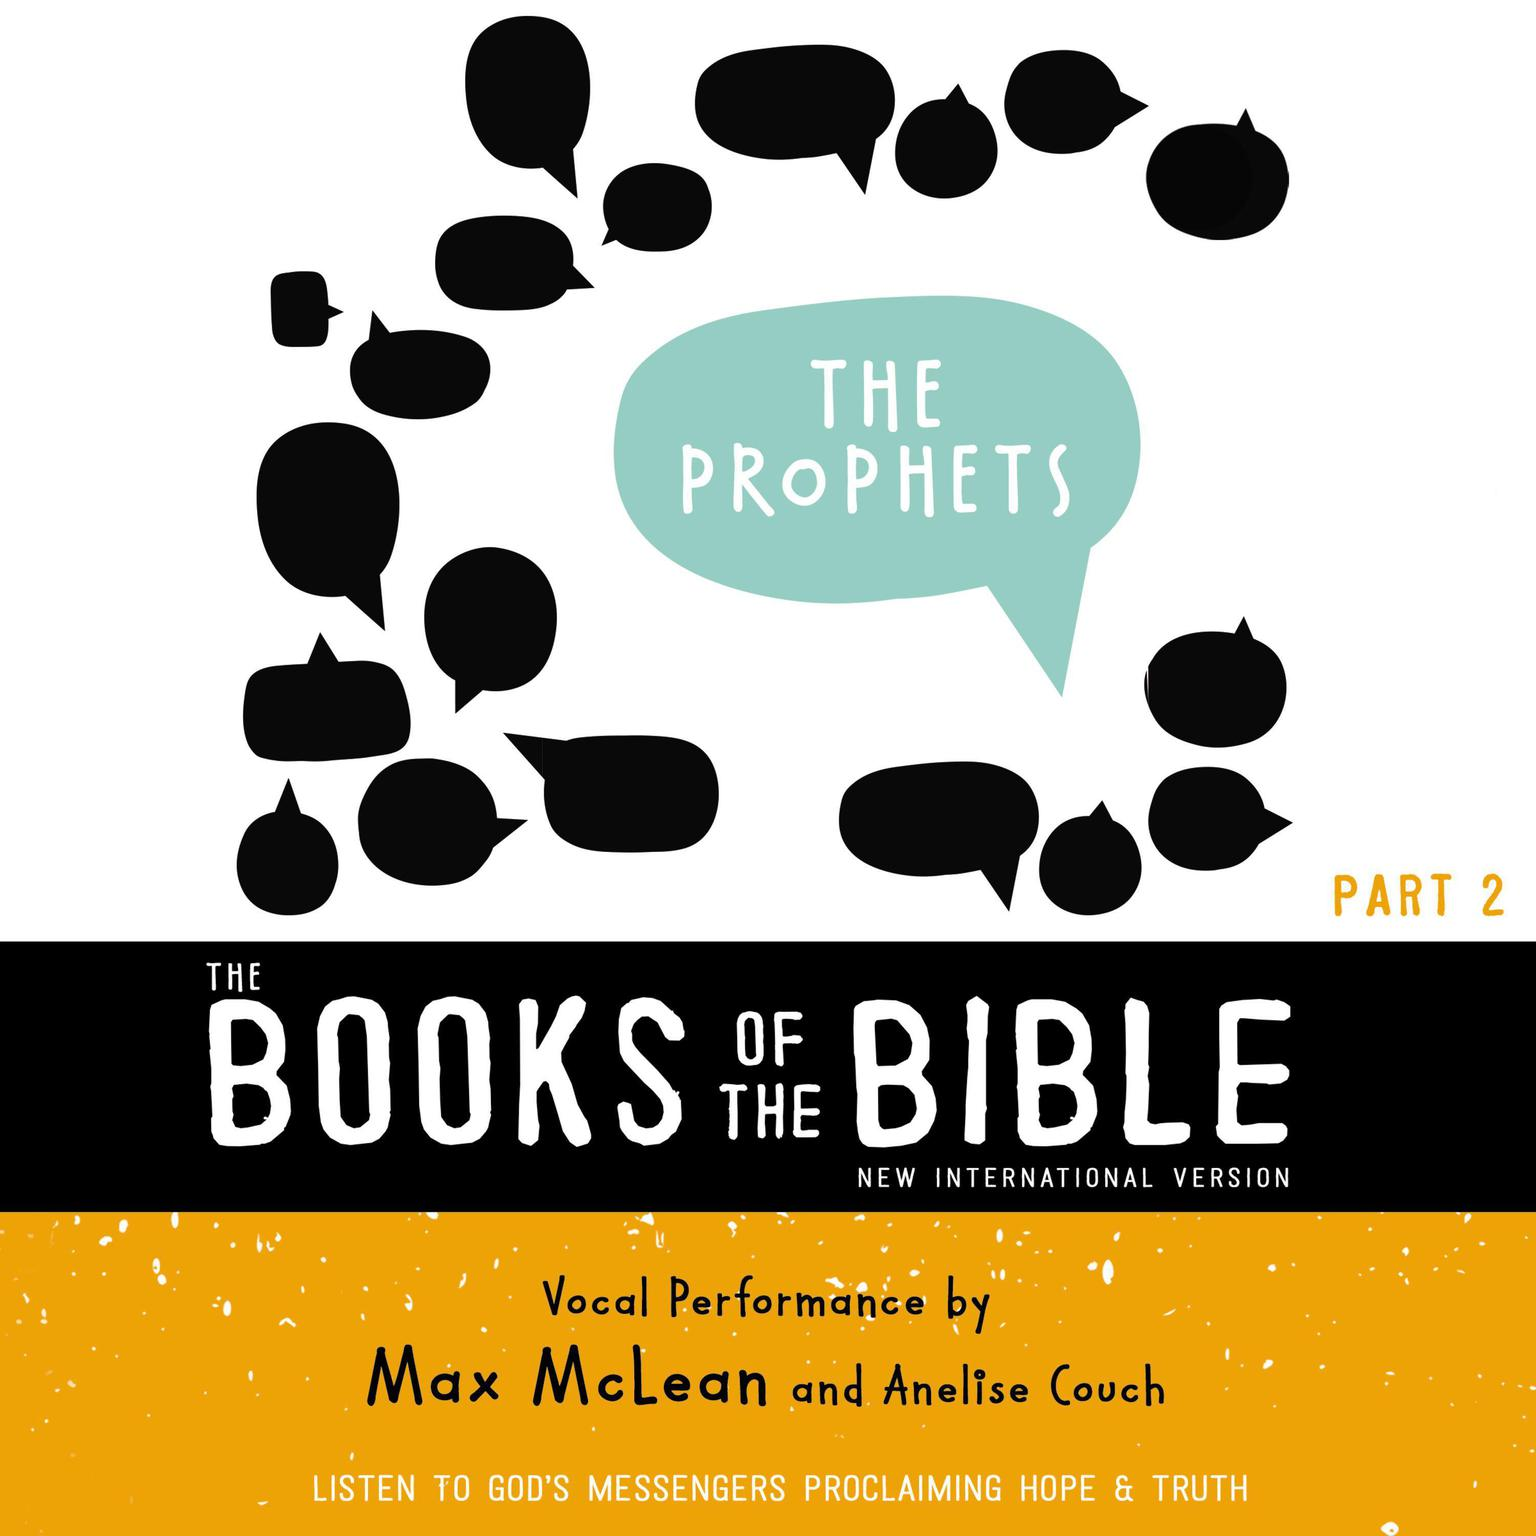 Printable The Books of the Bible Audio Bible - New International Version, NIV: (2) The Prophets: Listen to God's Messengers Proclaiming Hope and   Truth Audiobook Cover Art